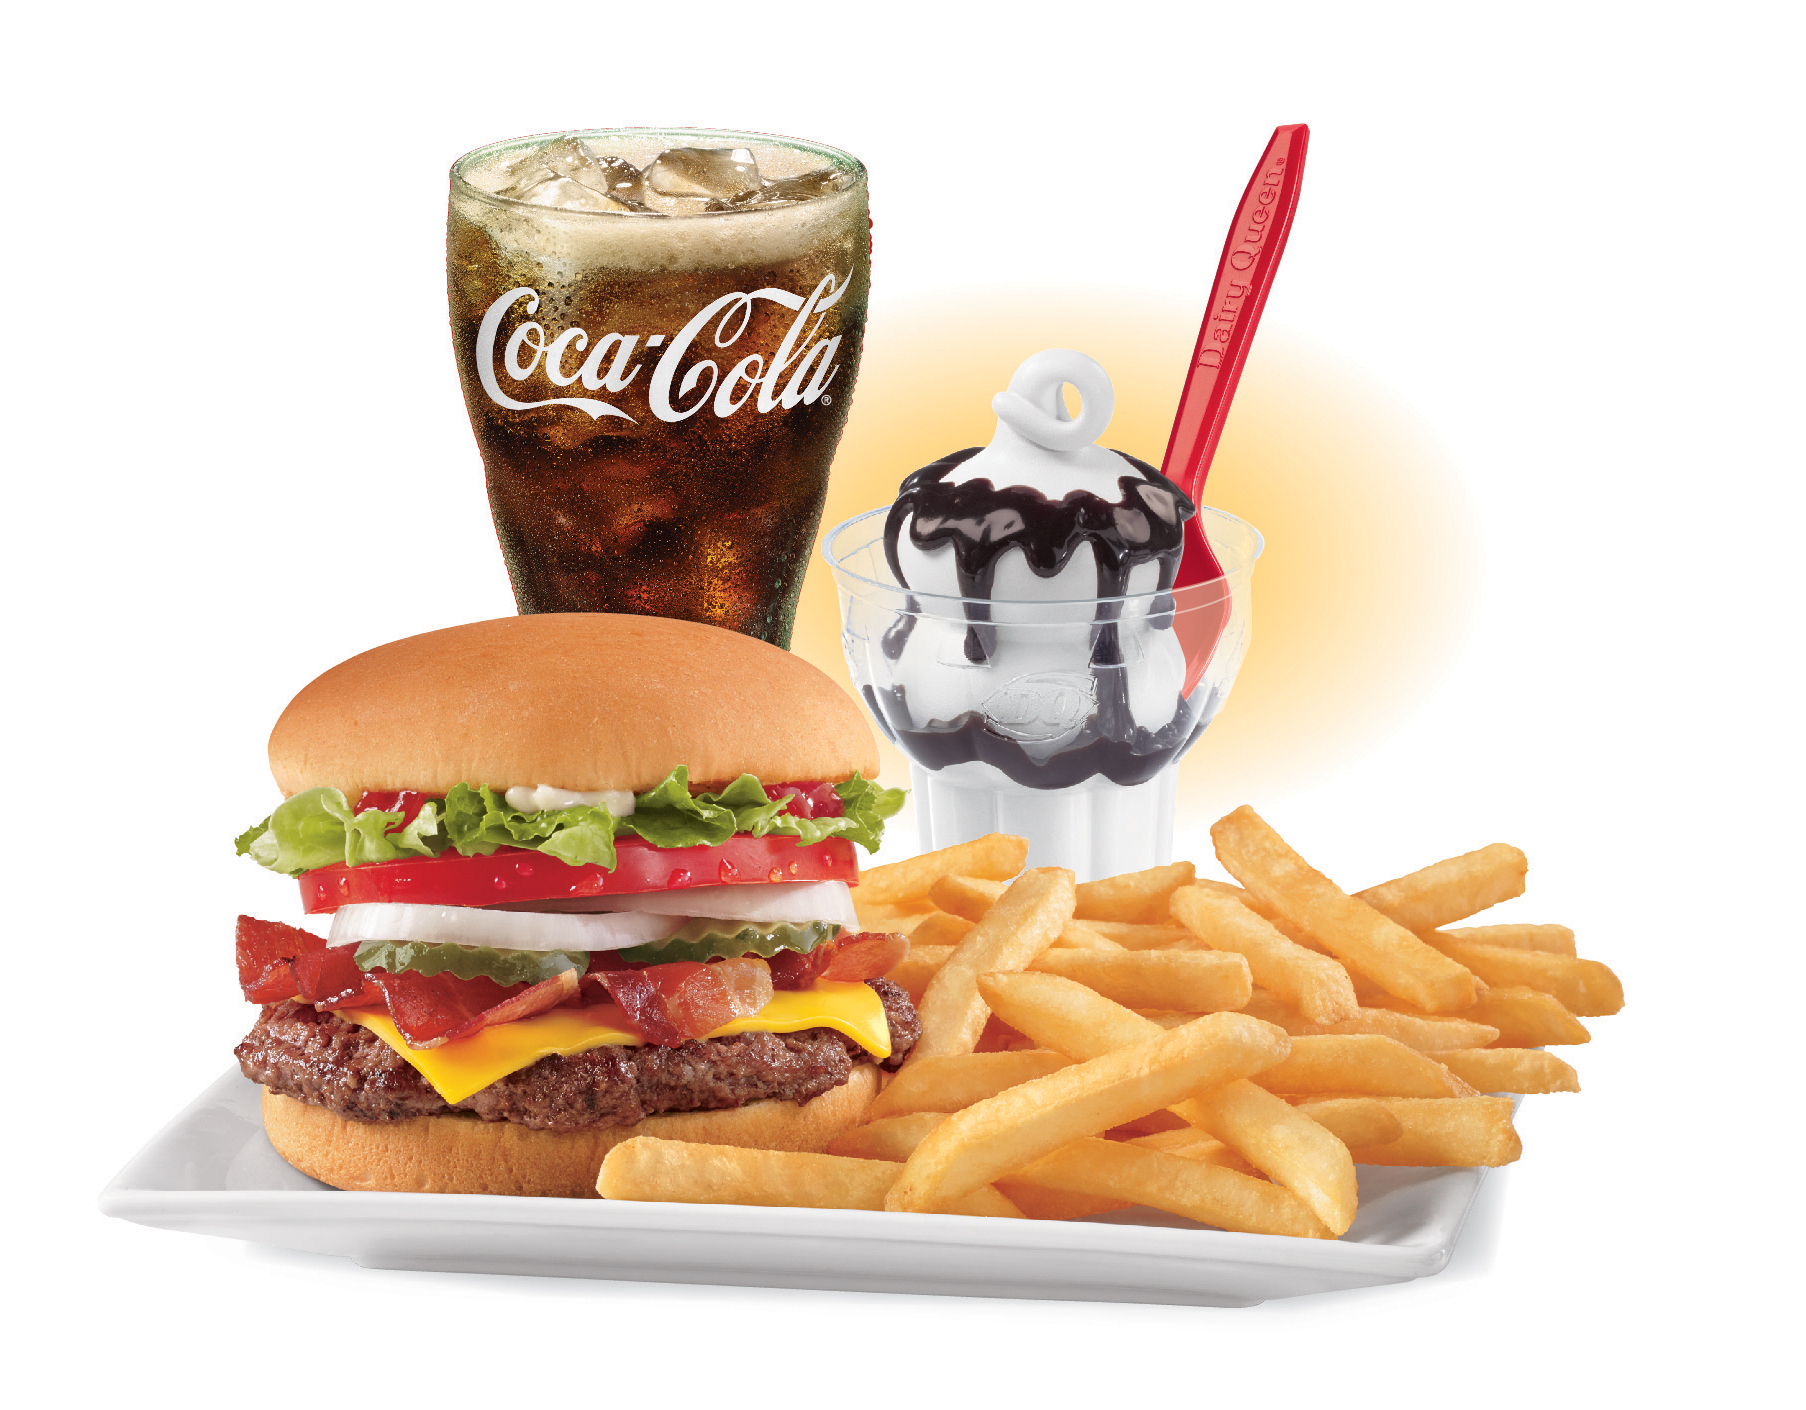 The Dairy Queen System Serves Up Deluxe Value In The New Year Business Wire